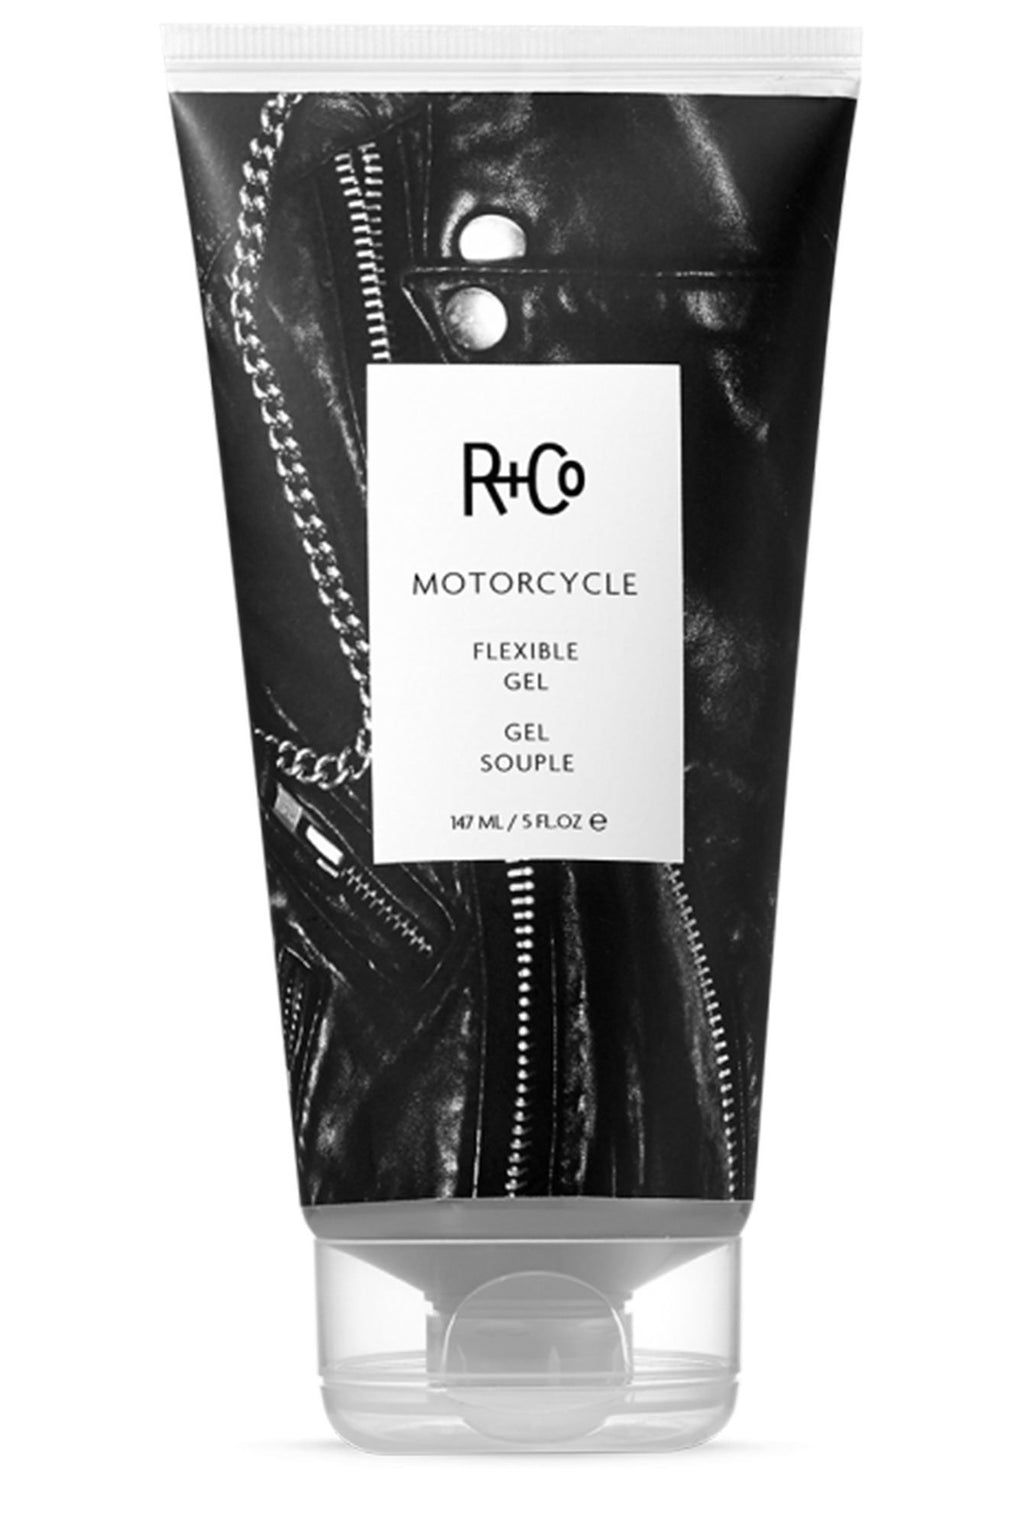 R+Co | Motorcycle Flexible Gel